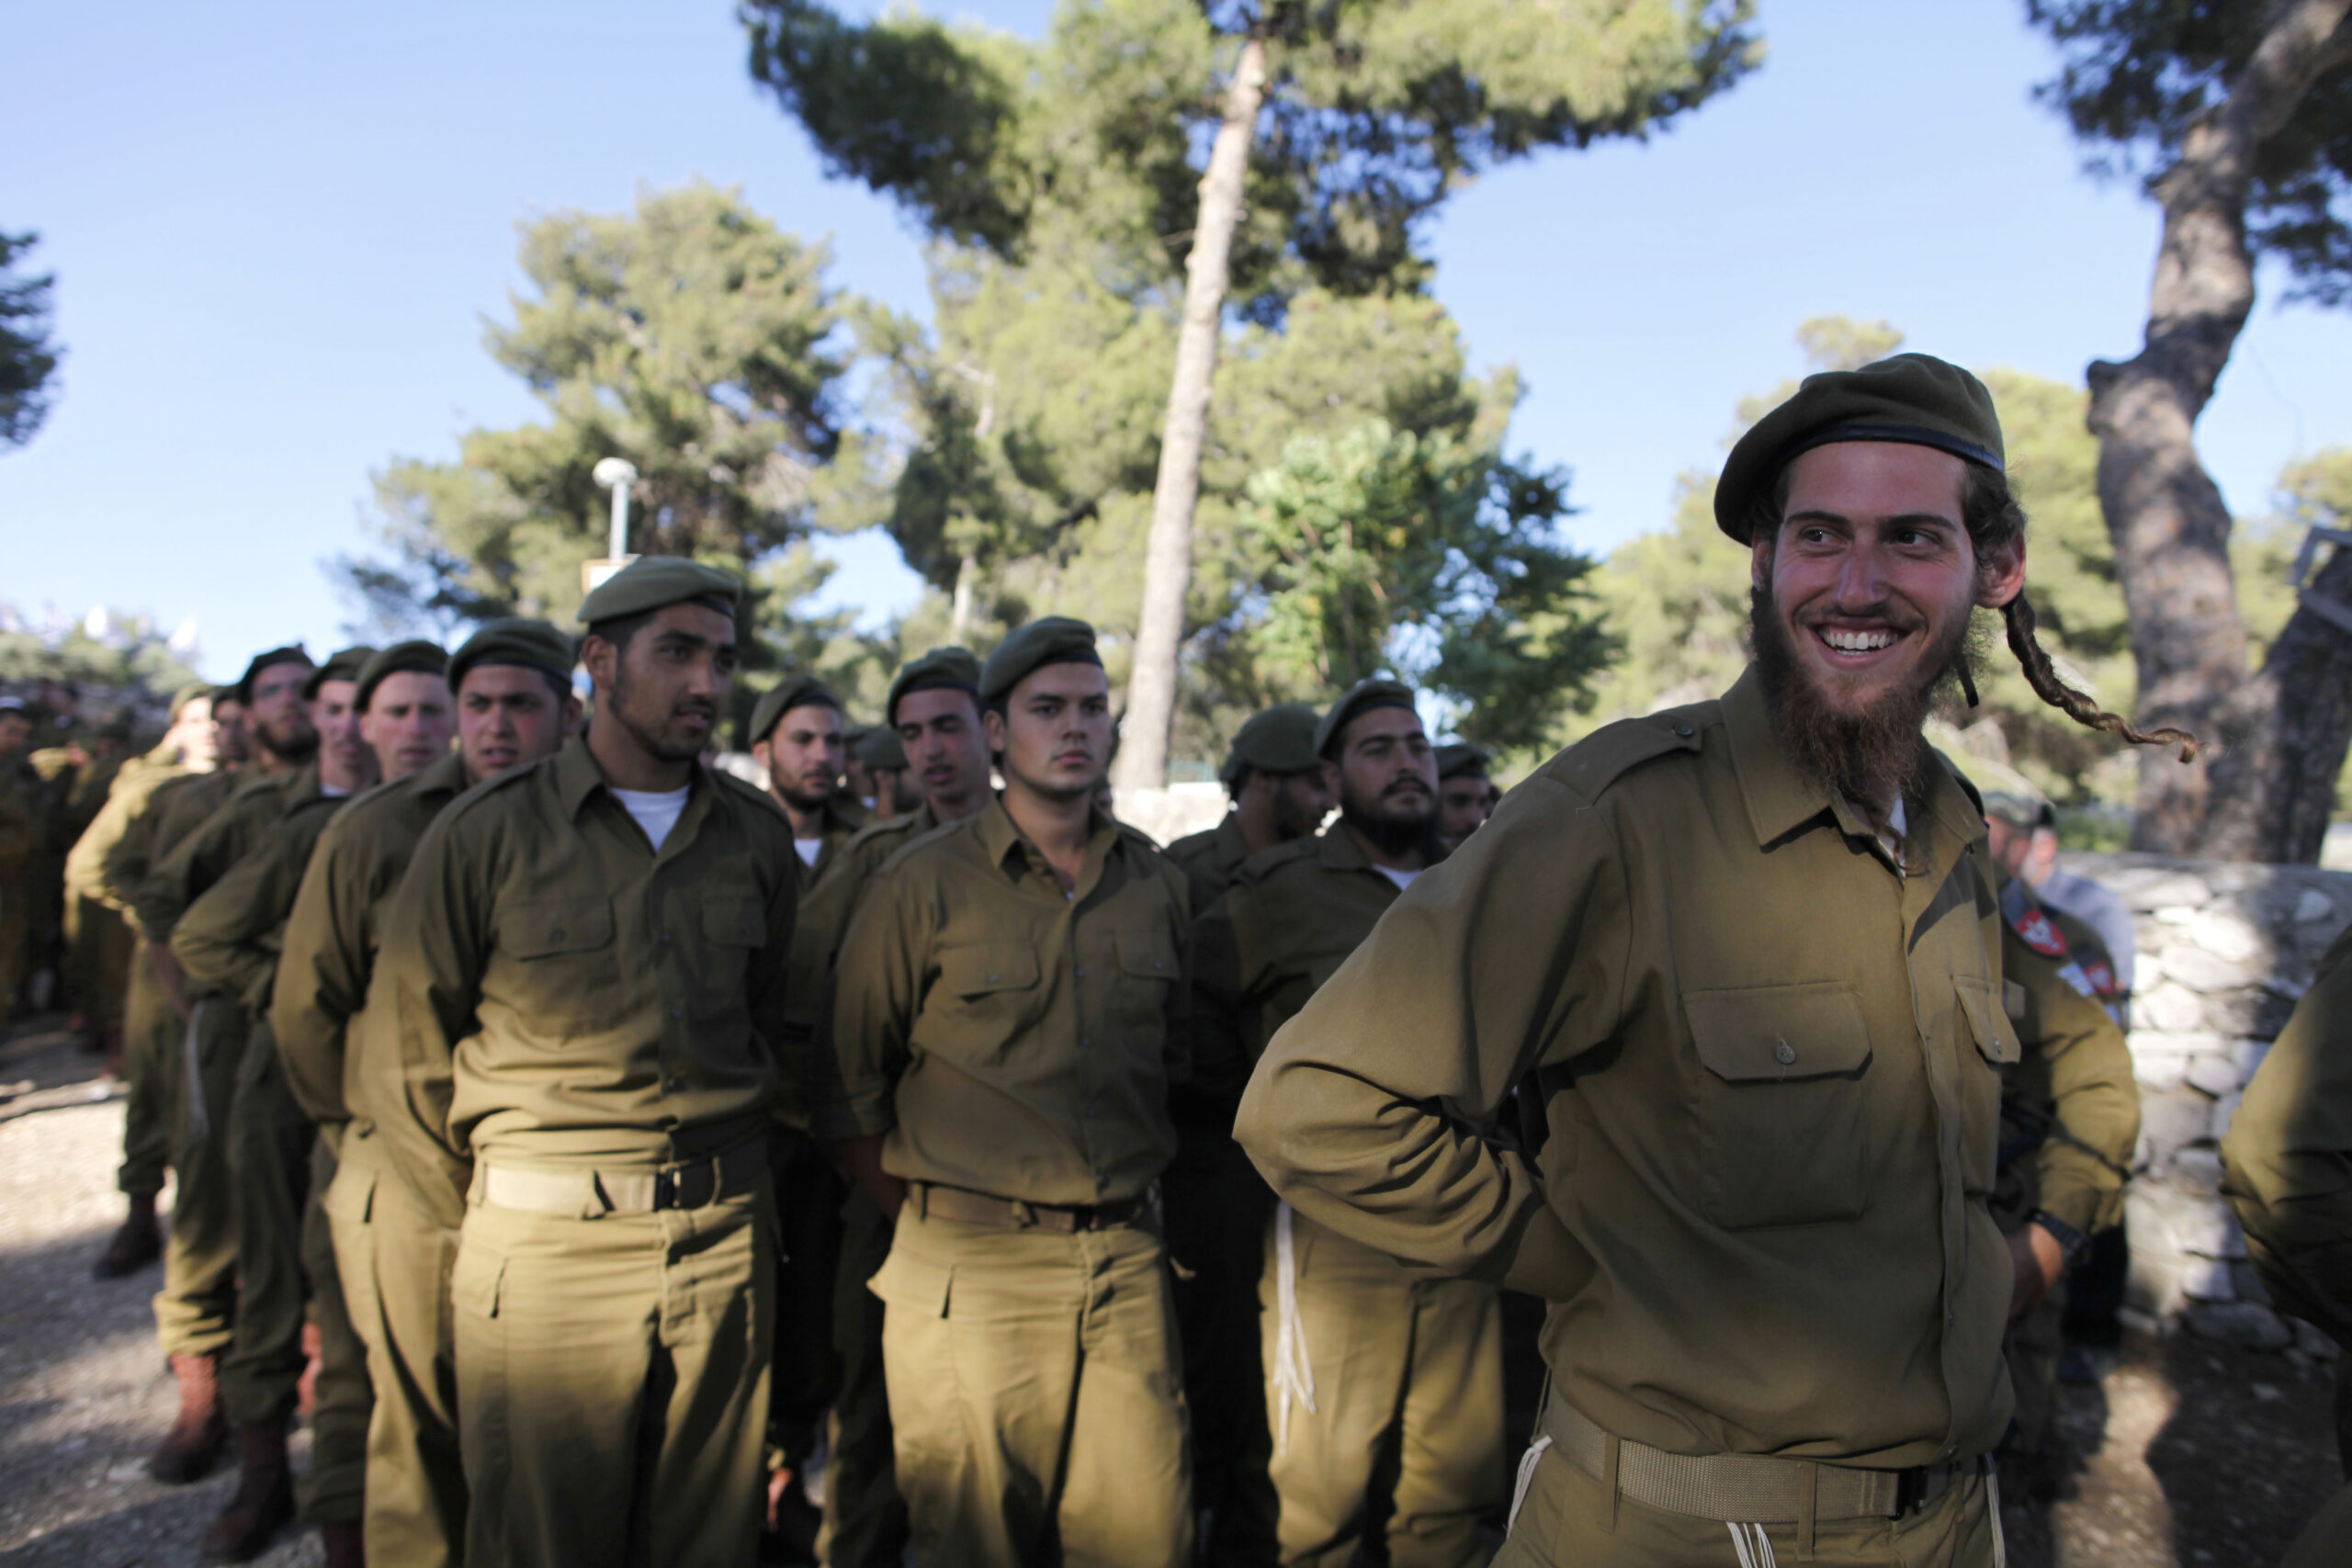 Podcast: Yehoshua Pfeffer on How Haredi Jews Think About Serving in the IDF